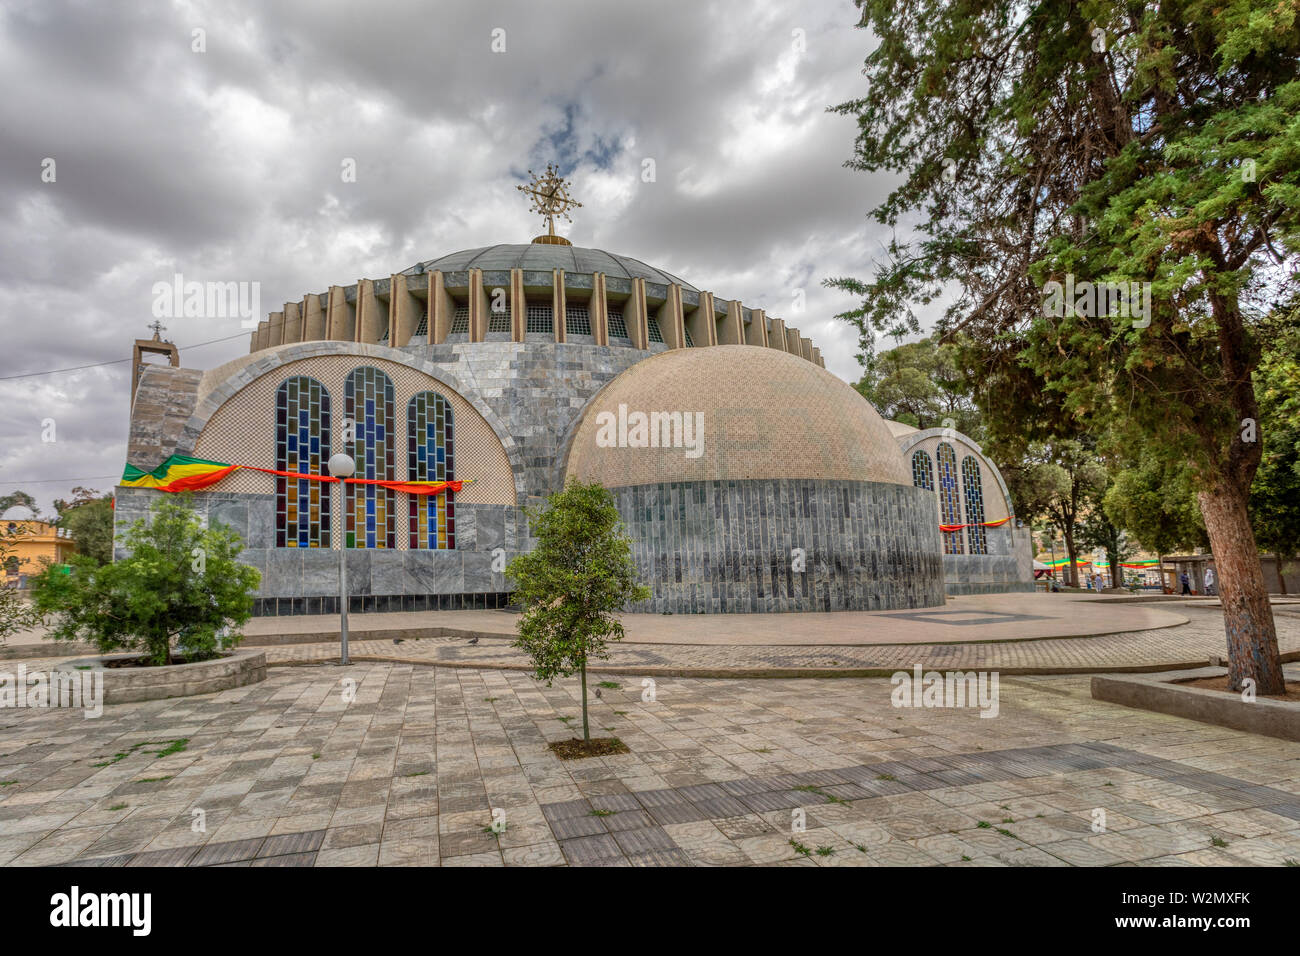 Famous cultural heritage Church of Our Lady of Zion in Axum. Ethiopian Orthodox Tewahedo Church built by Emperor Haile Selassie in the 1950s. - Stock Image